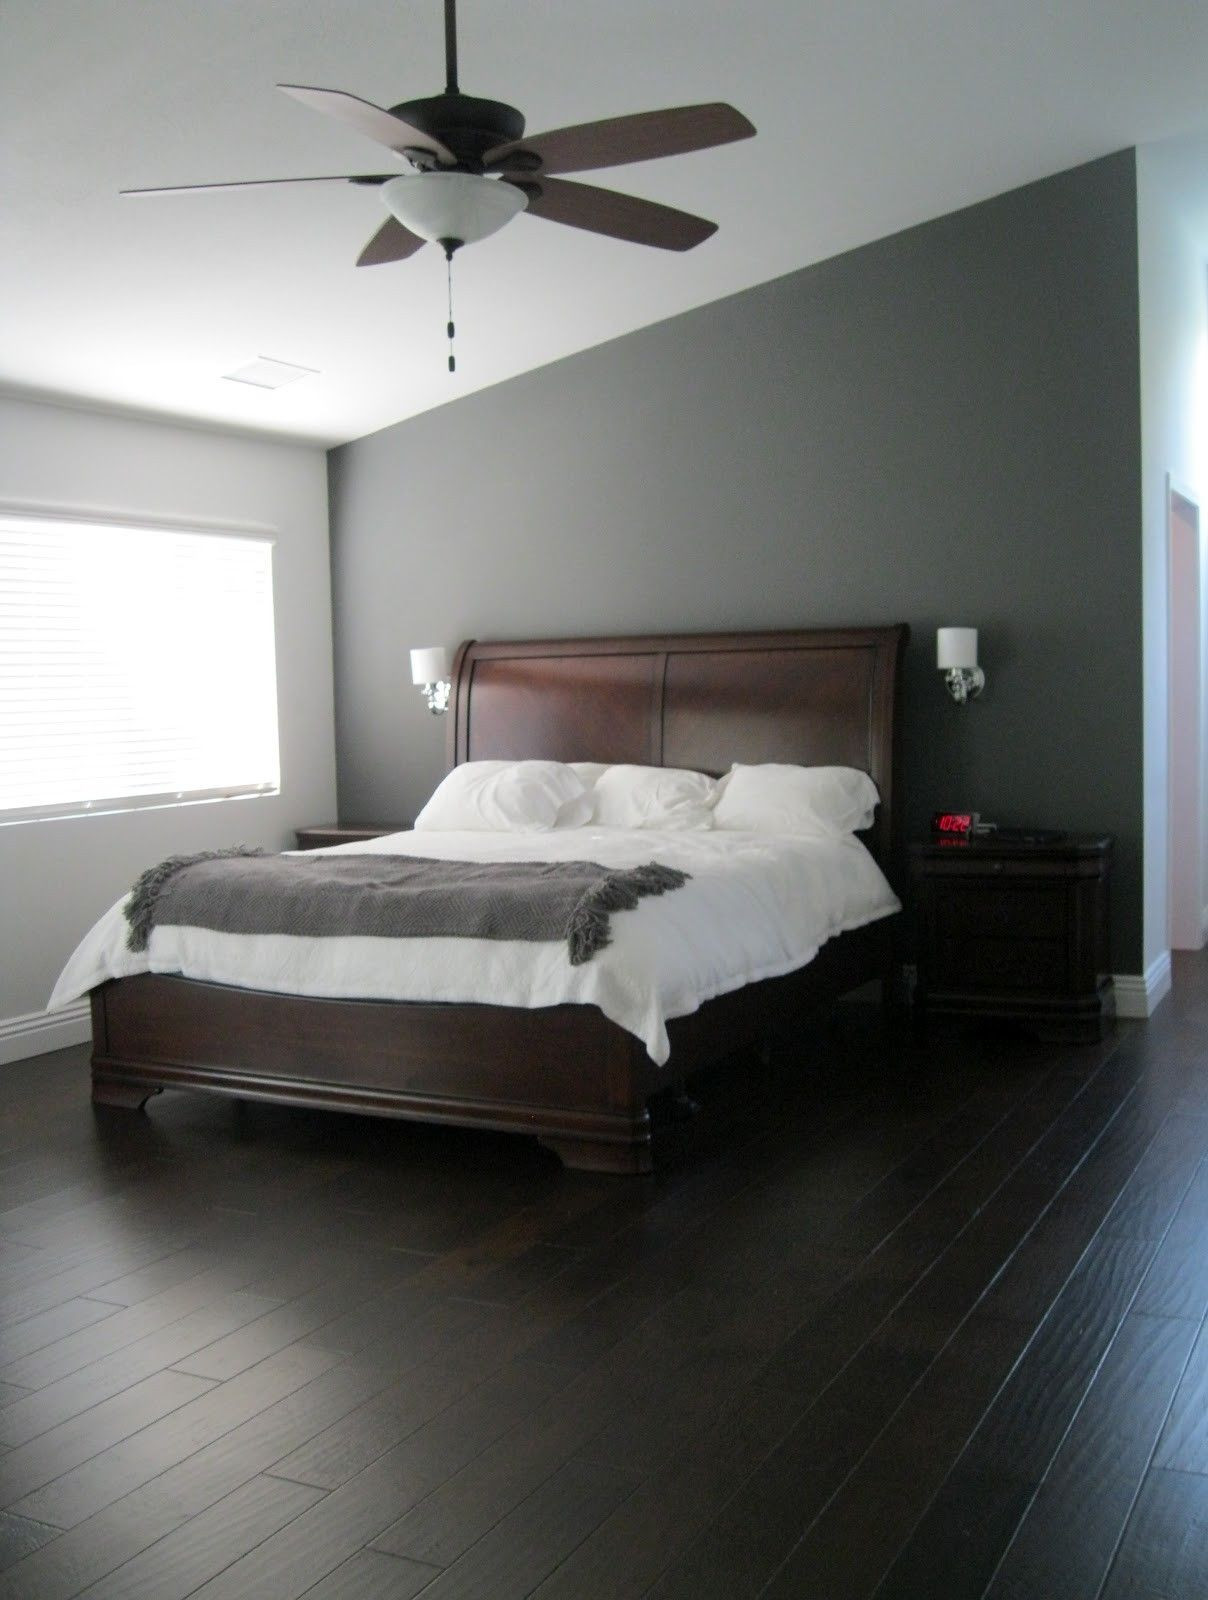 10 Unique Dark Hardwood Floors Gray Walls 2021 free download dark hardwood floors gray walls of dark wood floors with grey walls with image result for grey walls and dark wood floors grey walls with